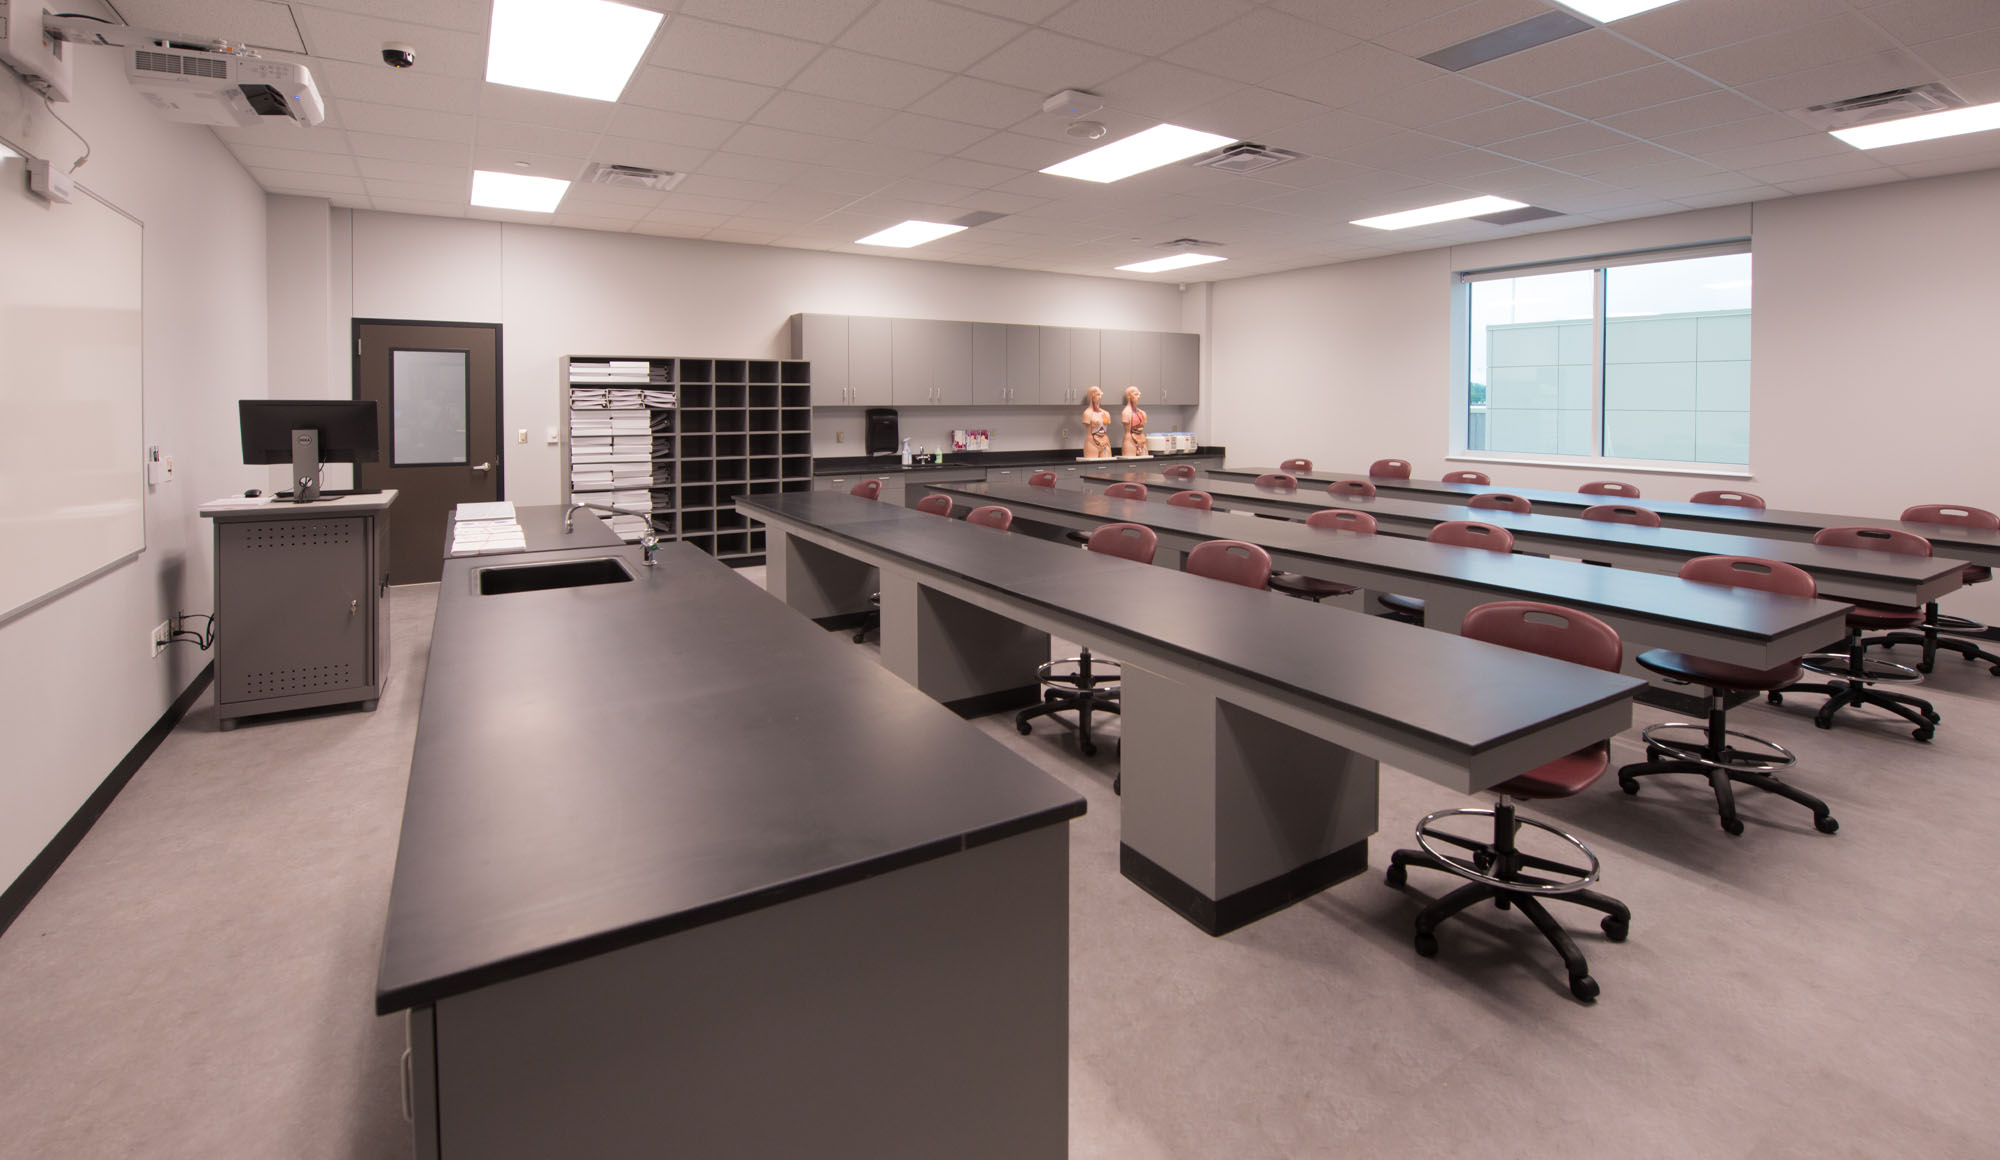 STEM Building Class Room